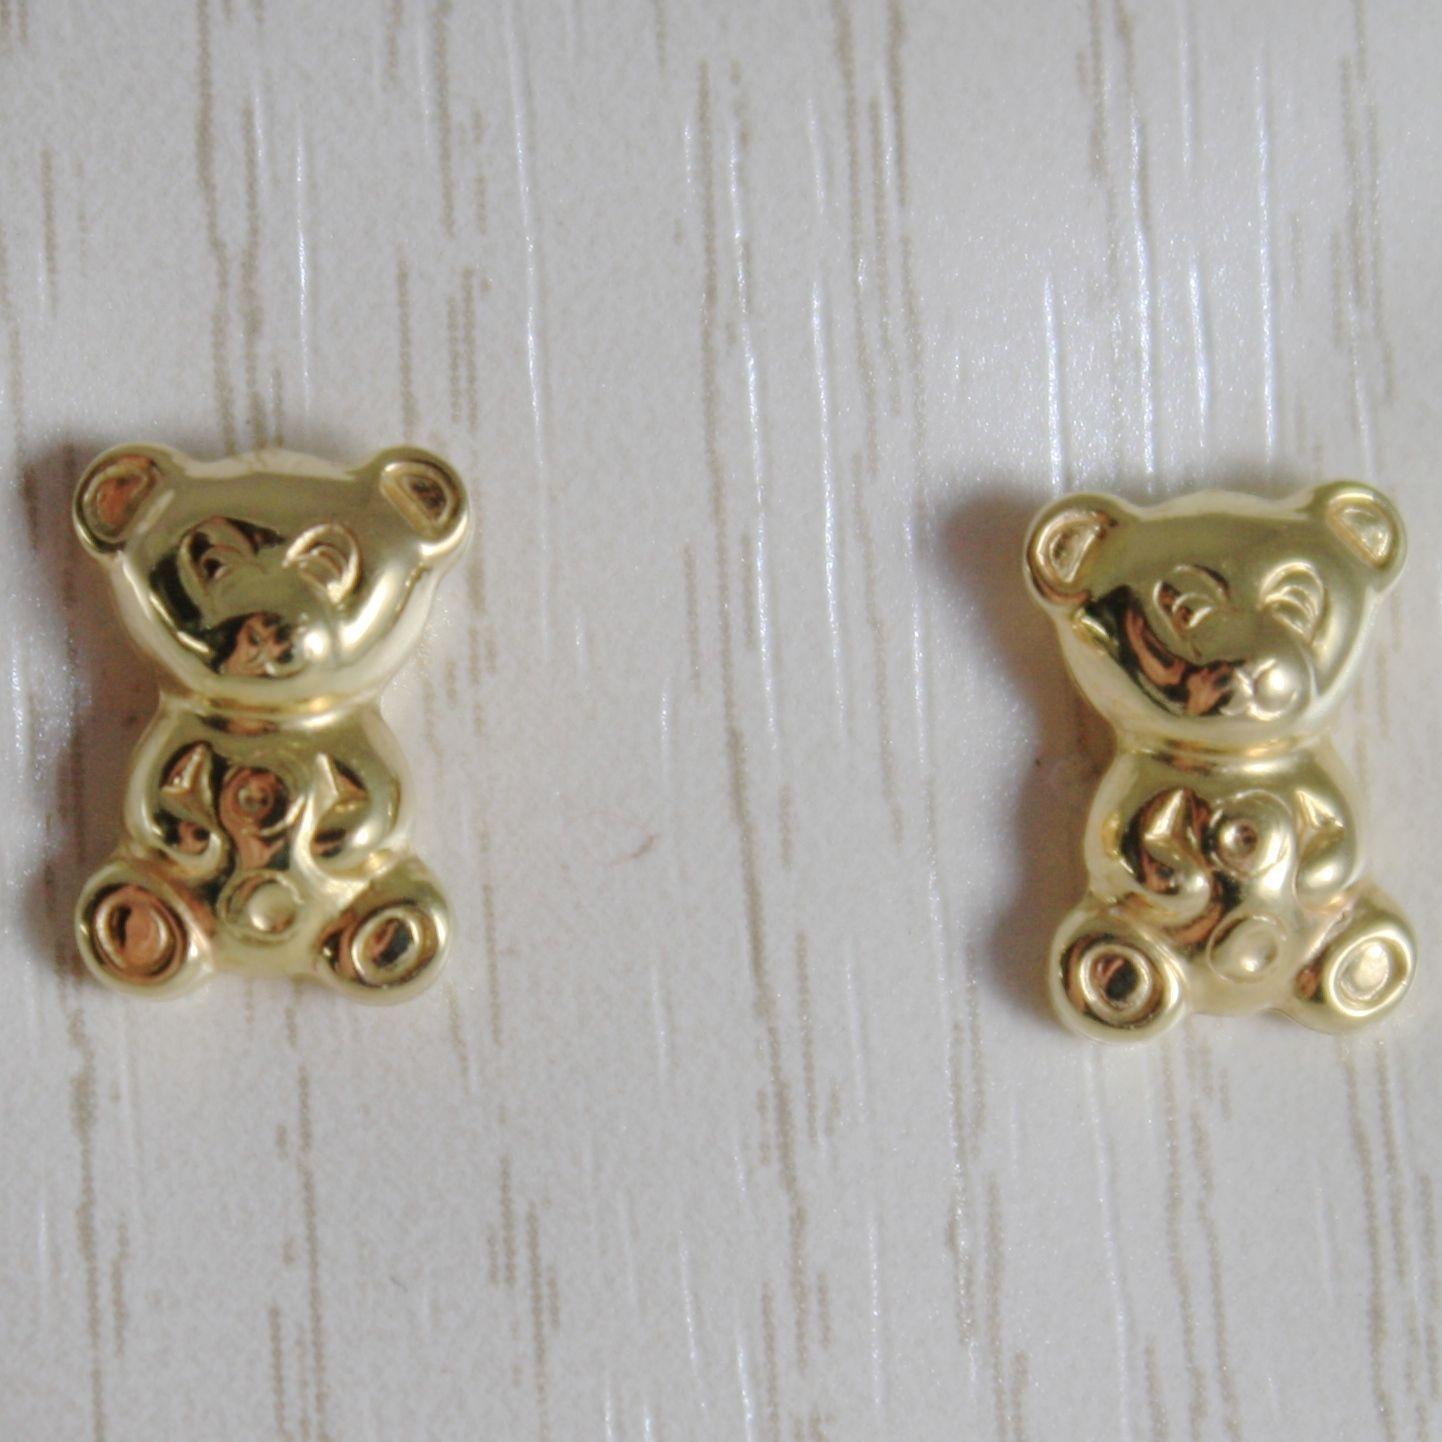 18K YELLOW GOLD EARRINGS MINI BEAR, BEARS POLISHED FOR KIDS CHILD MADE IN ITALY